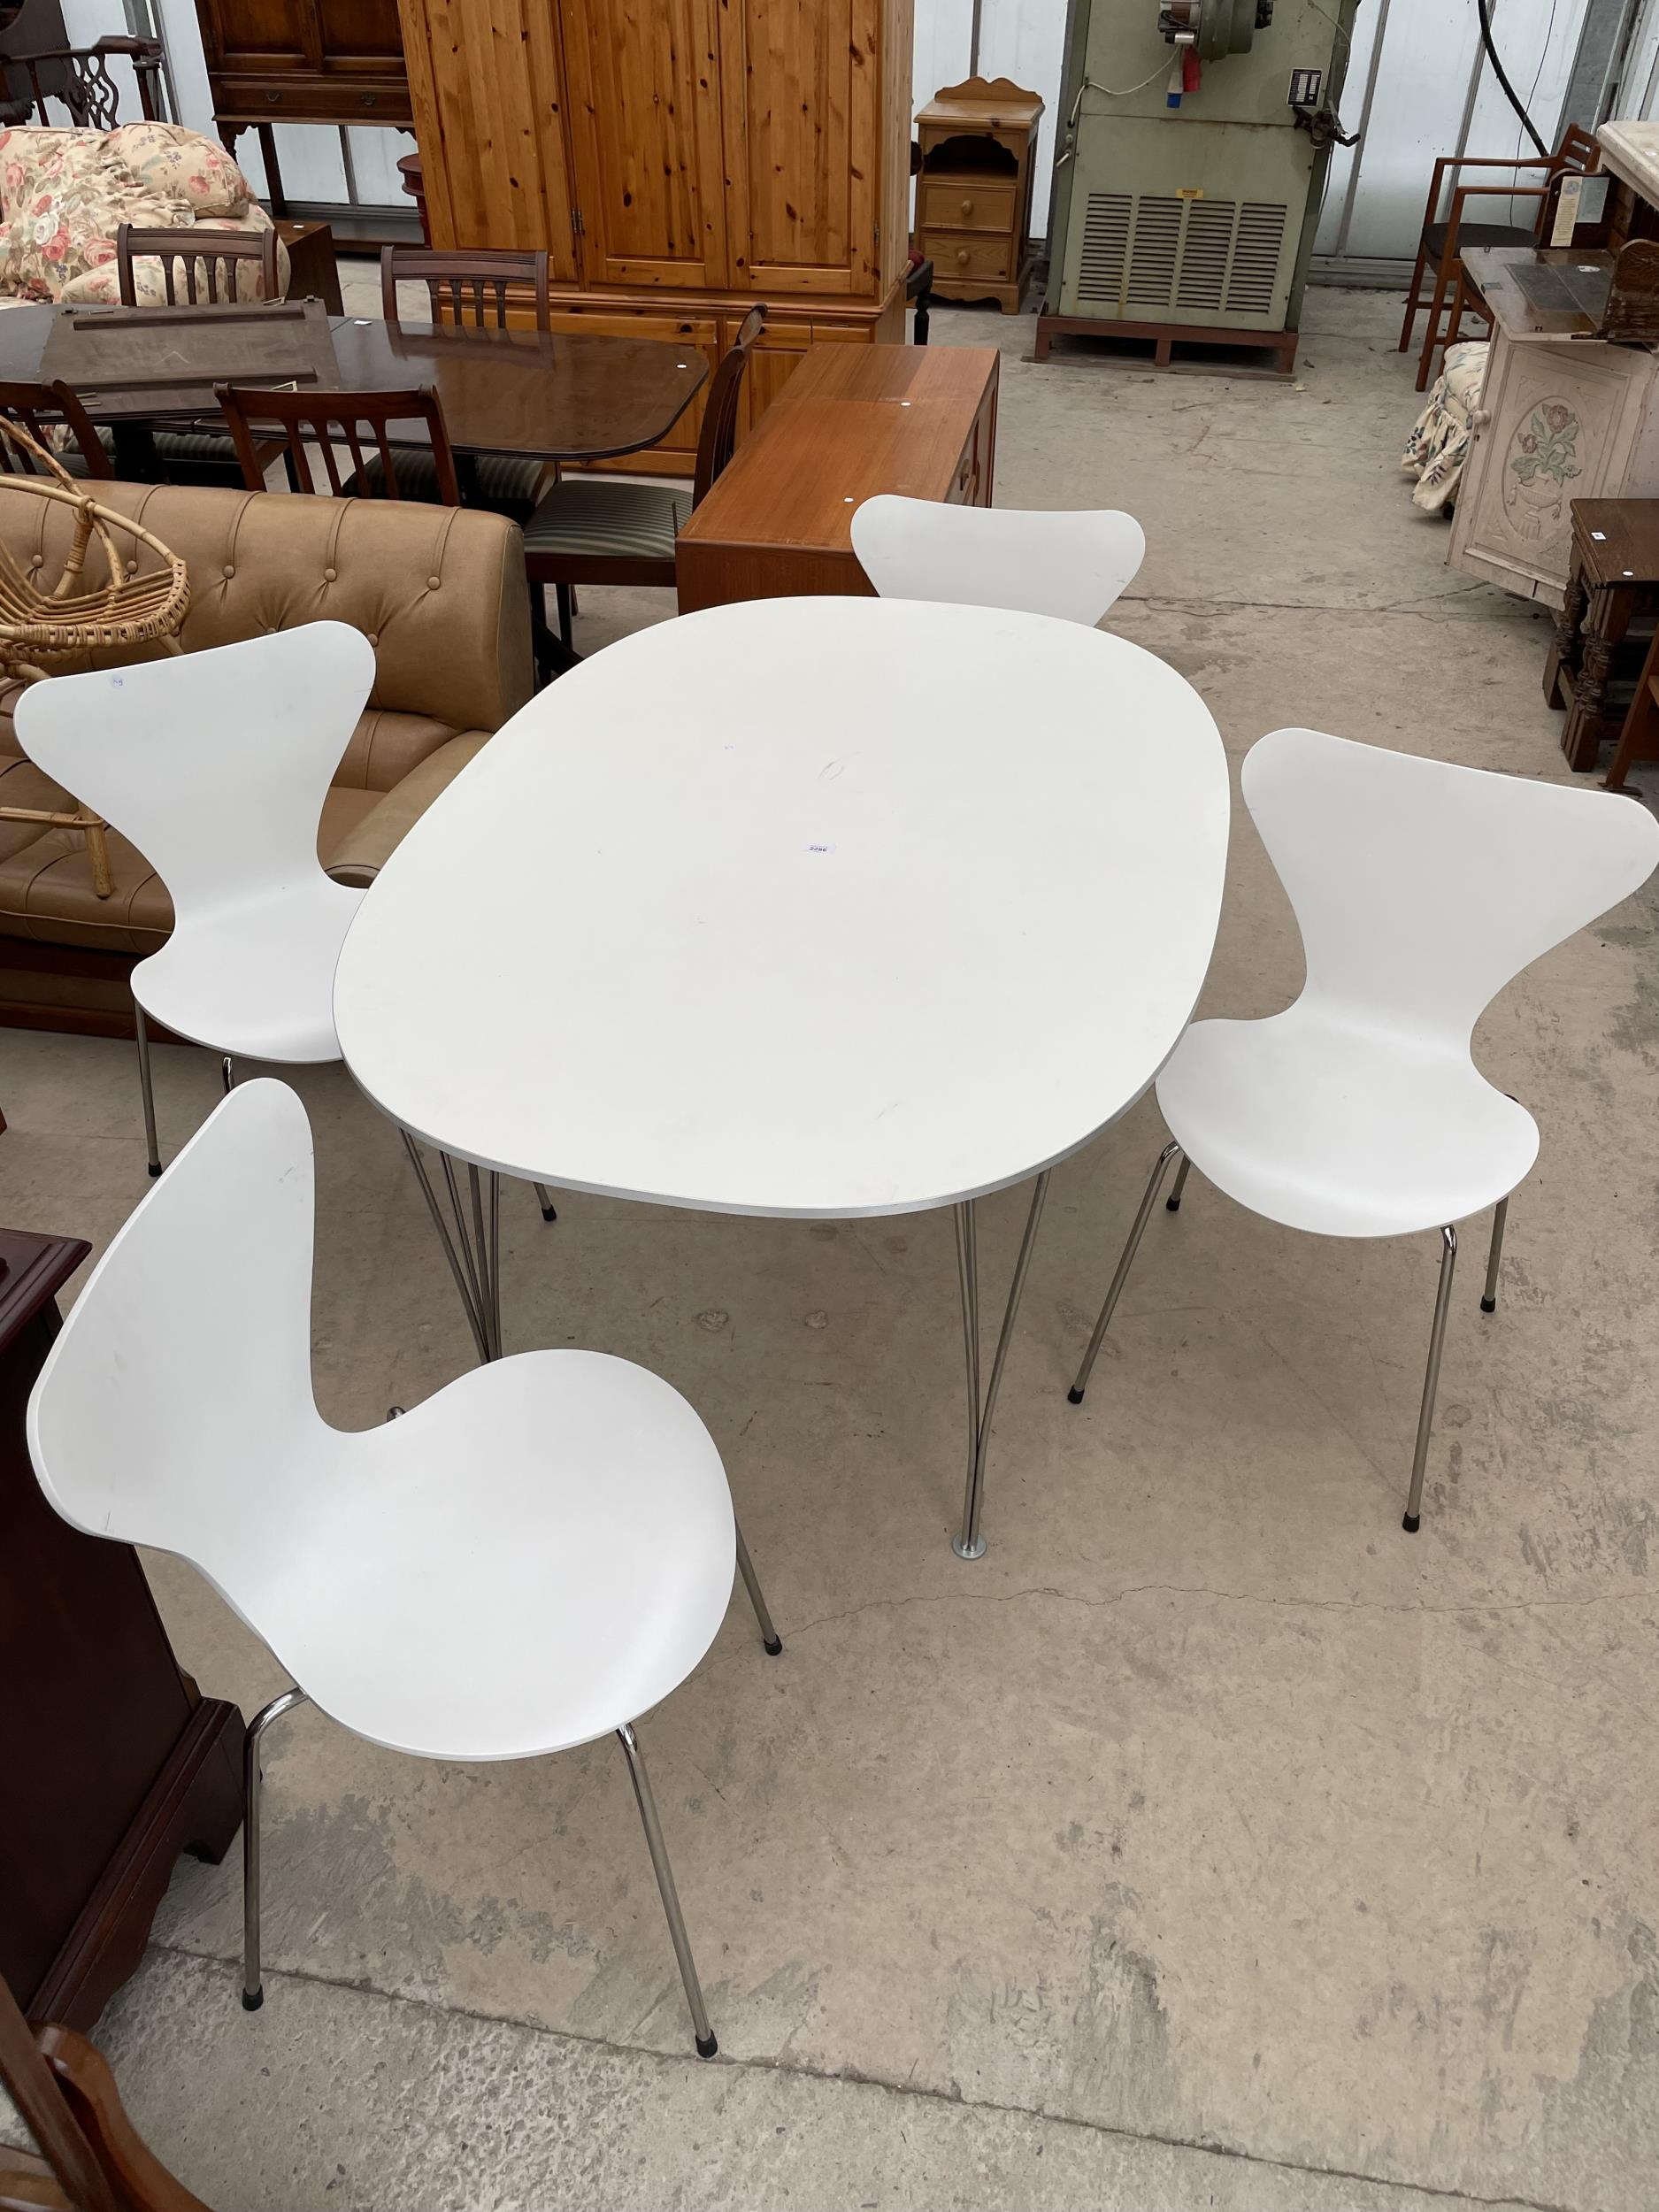 A WHITE OVULAR DINING TABLE BEARING LABEL 'MADE IN DENMARK, REPUBLIC OF FRITZ HANSEN DESIGN: PIET - Image 3 of 5